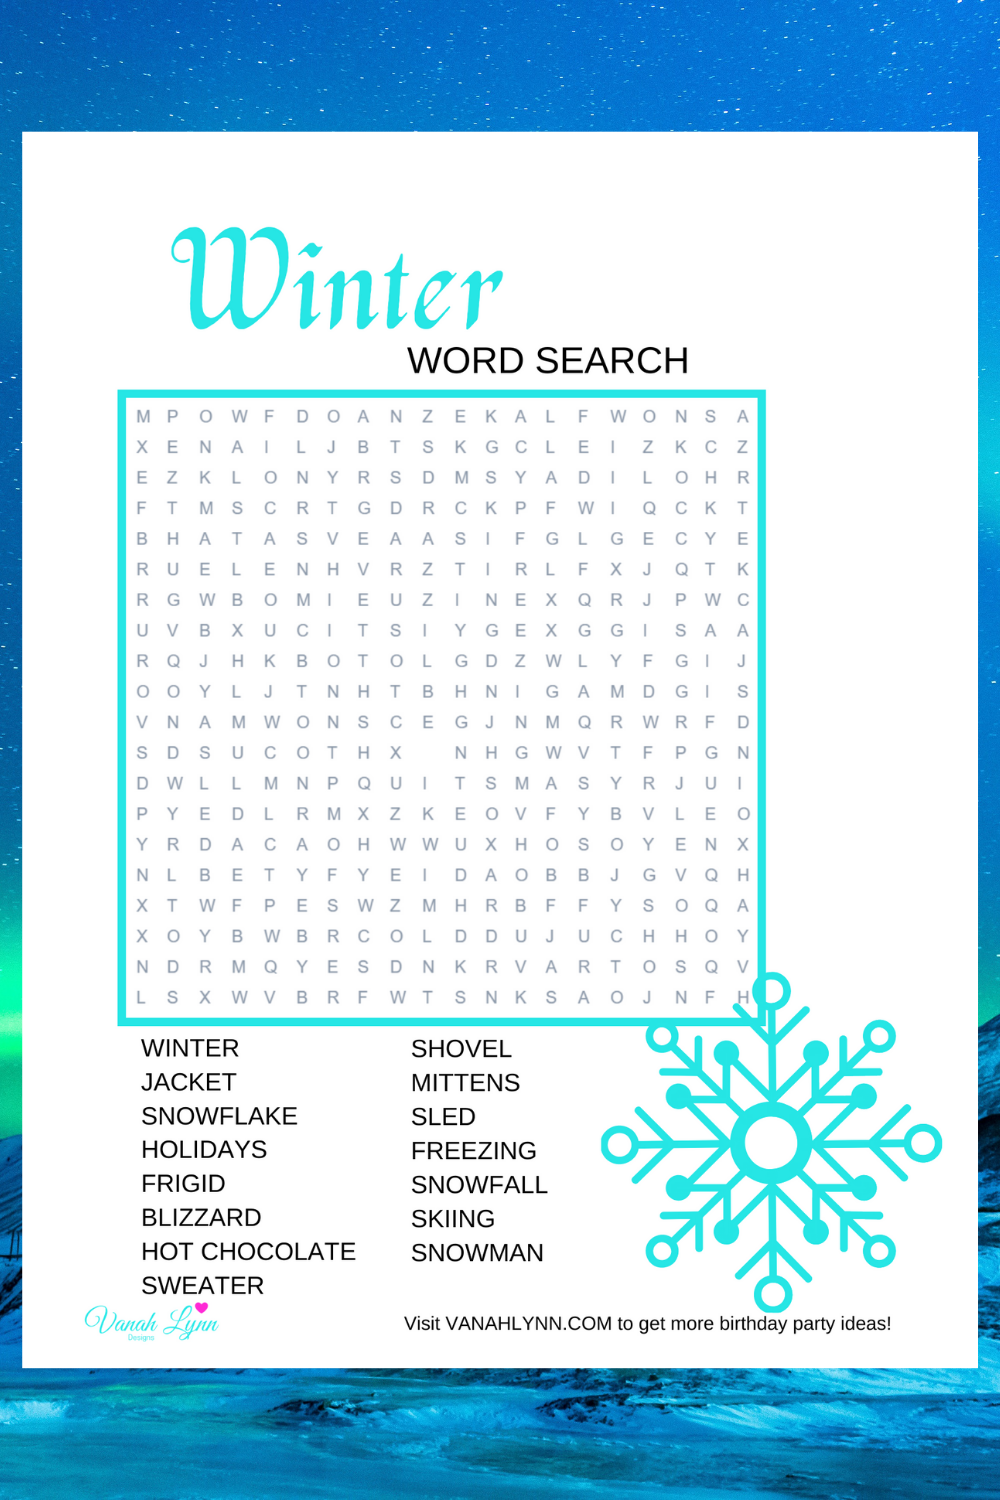 free download: winter activity sheet for a birthday party